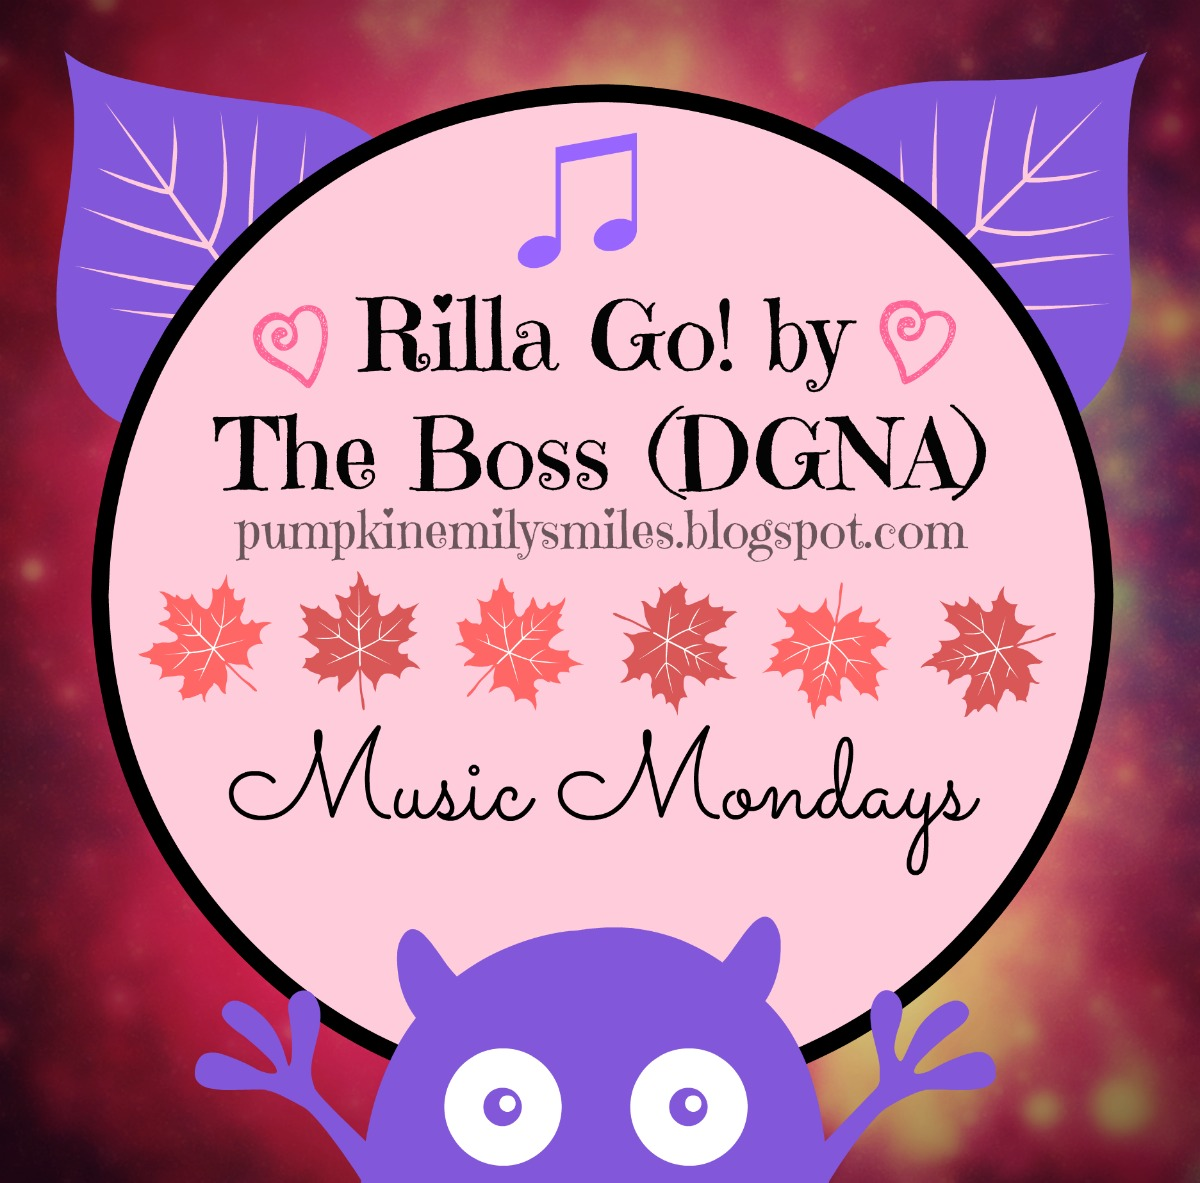 Rilla Go! by The Boss (DGNA) Music Mondays